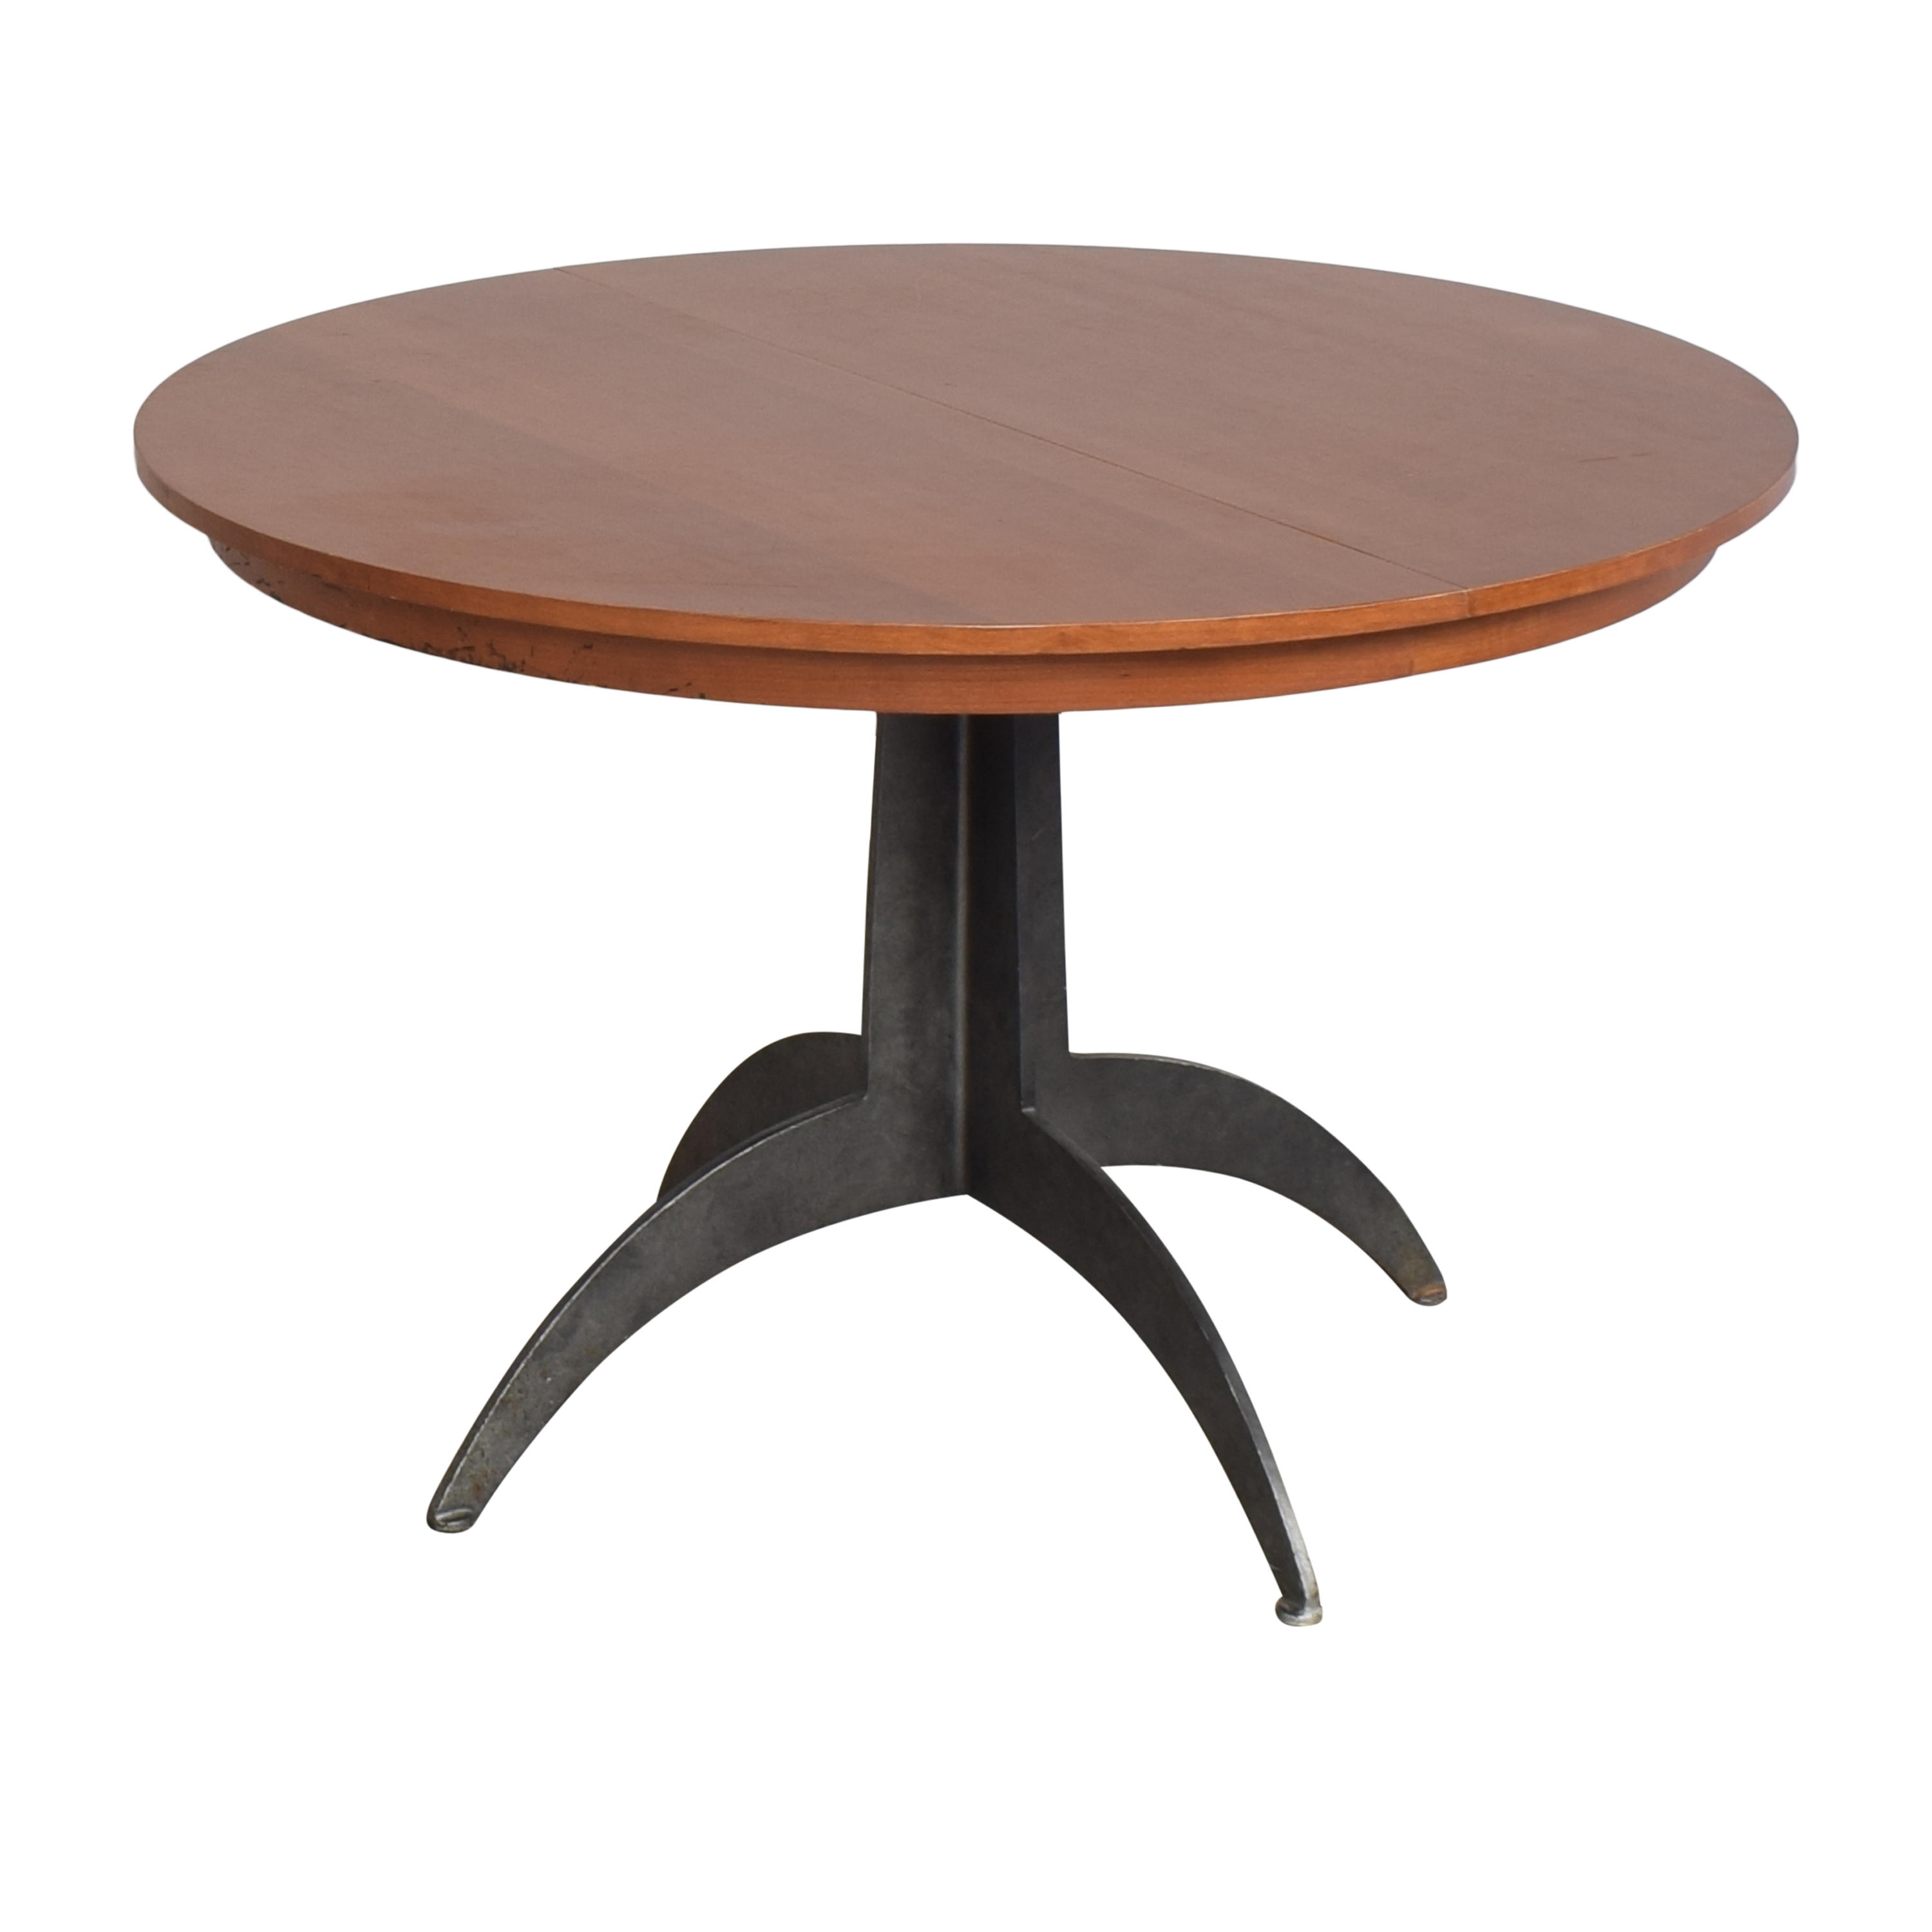 buy Ethan Allen Ethan Allen Round Extendable Dining Table online